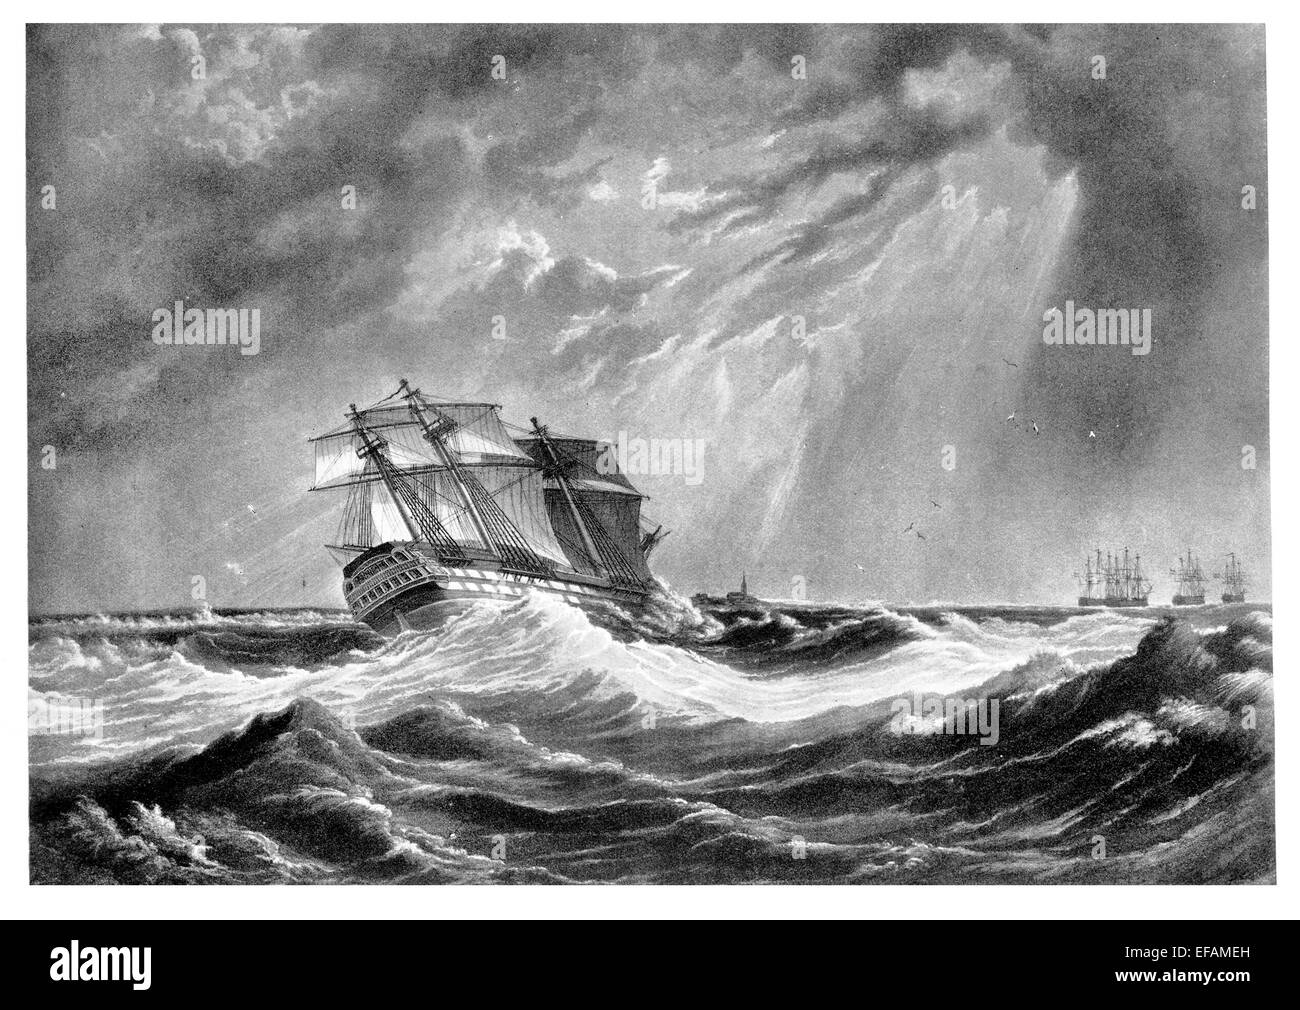 H.M.S. Magnificent 74 Launched 1806 1812 escaped wreck as depicted 1825 became hospital ship in West Indies sold - Stock Image